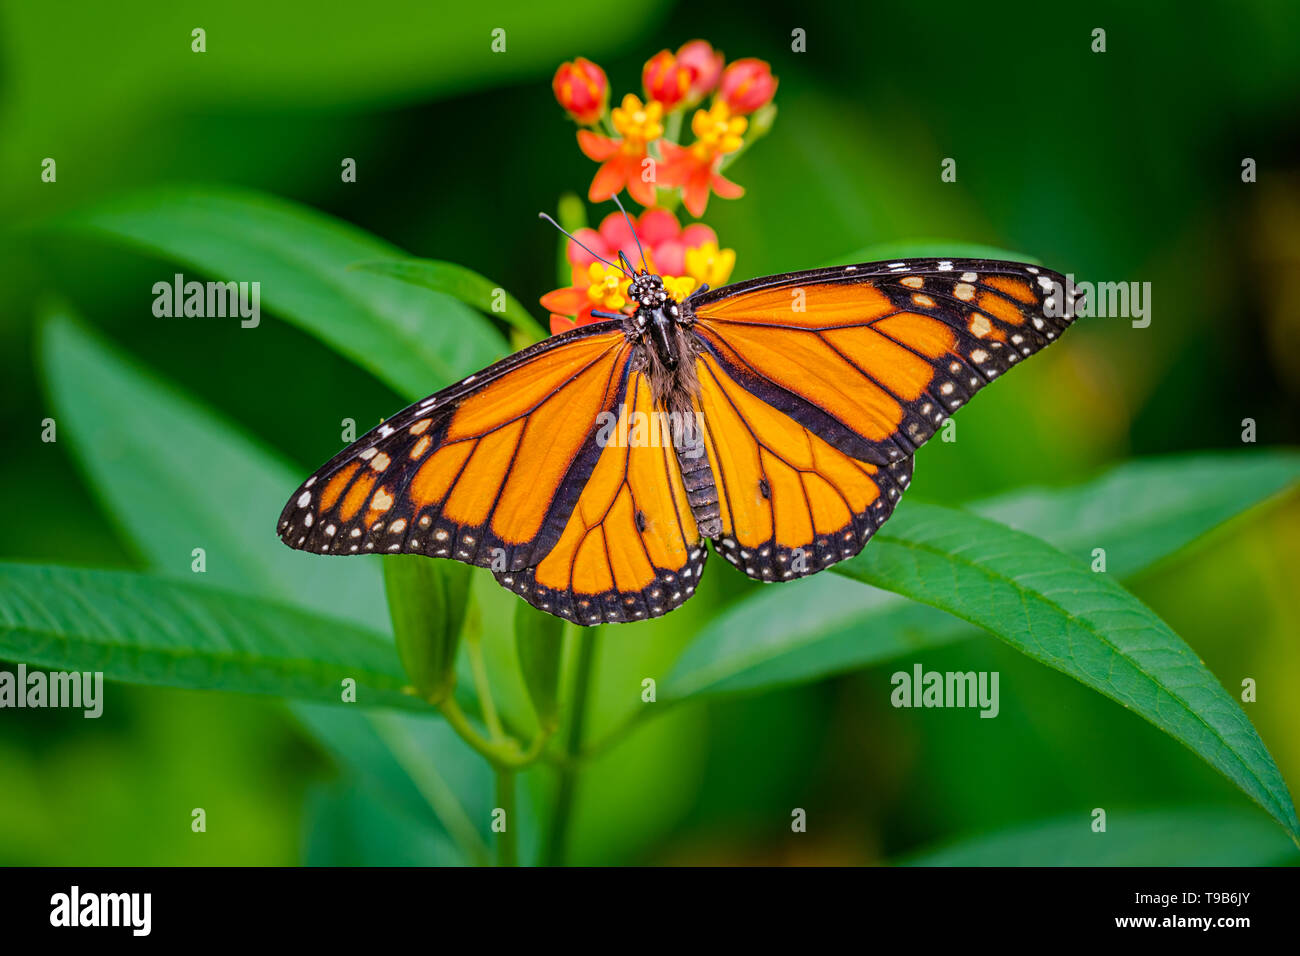 Beautiful monarch butterfly, danaus plexippus, with wings spread wide on a red flower with green bokeh leaves  background - Stock Image